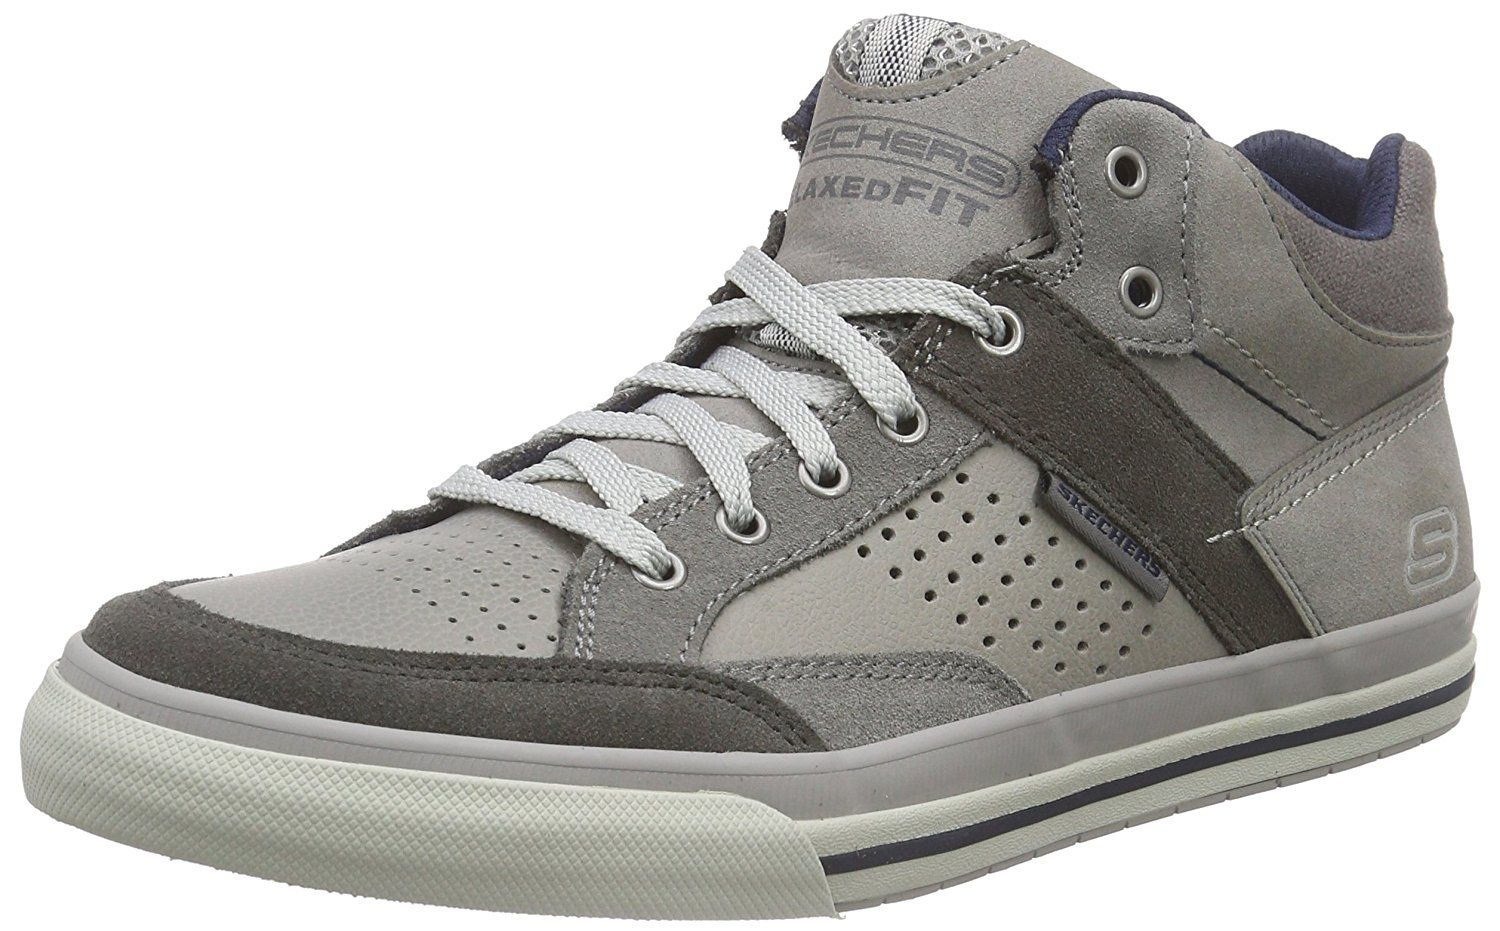 Diamondback Oduro Fit See Top Men's Skechers Sneaker Relaxed High q4vctf